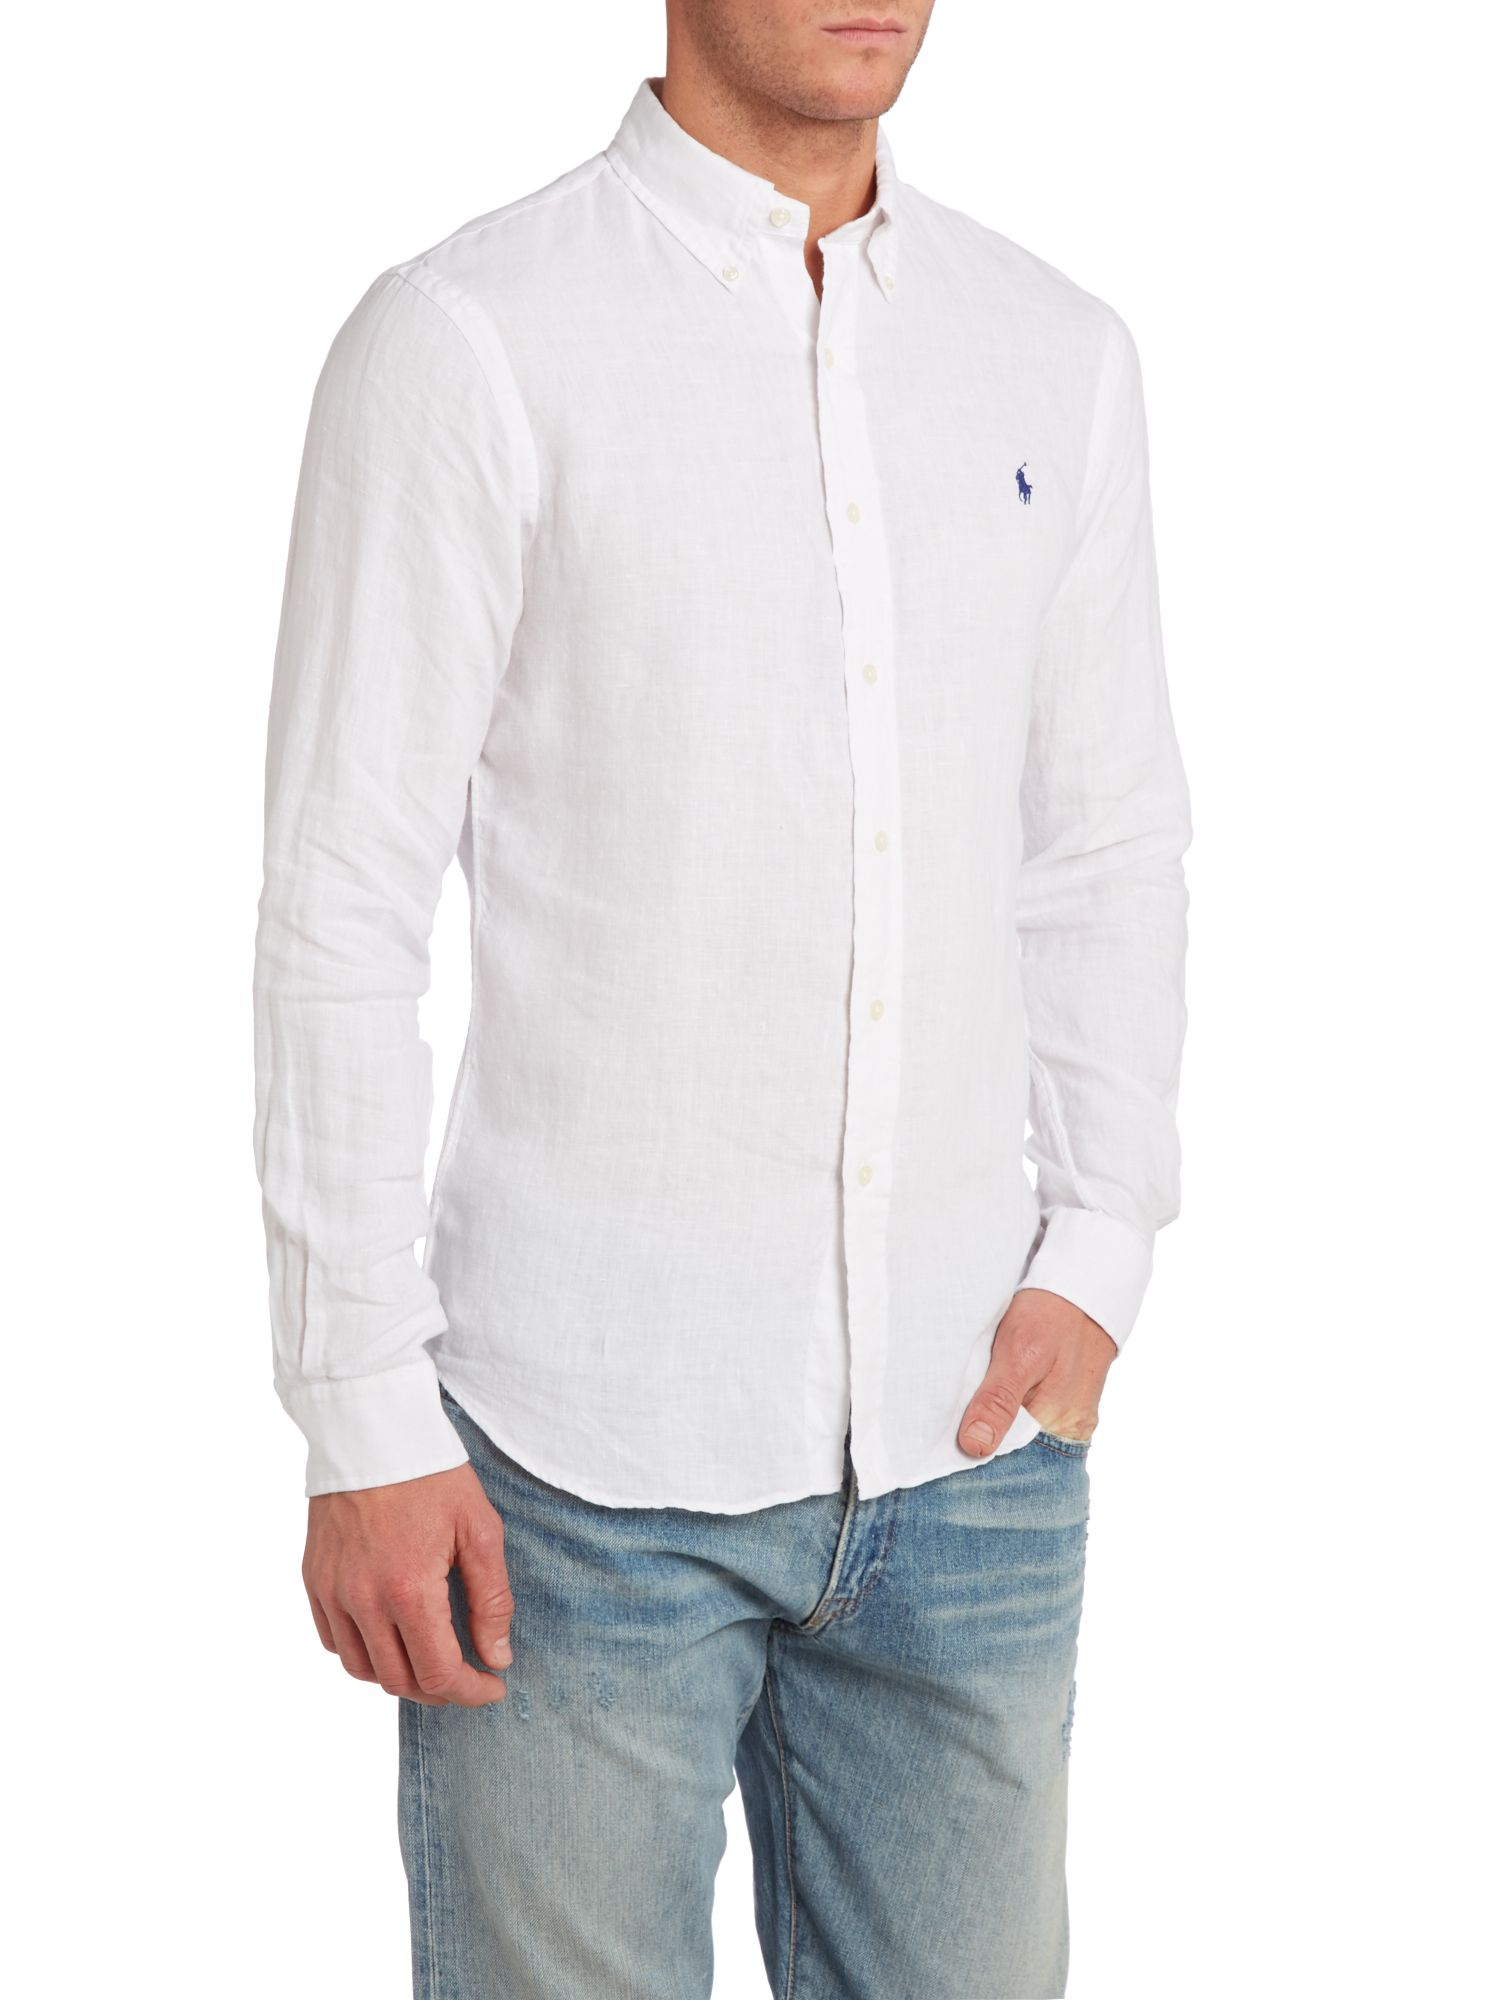 Ralph Lauren Slim Fit Linen Shirt